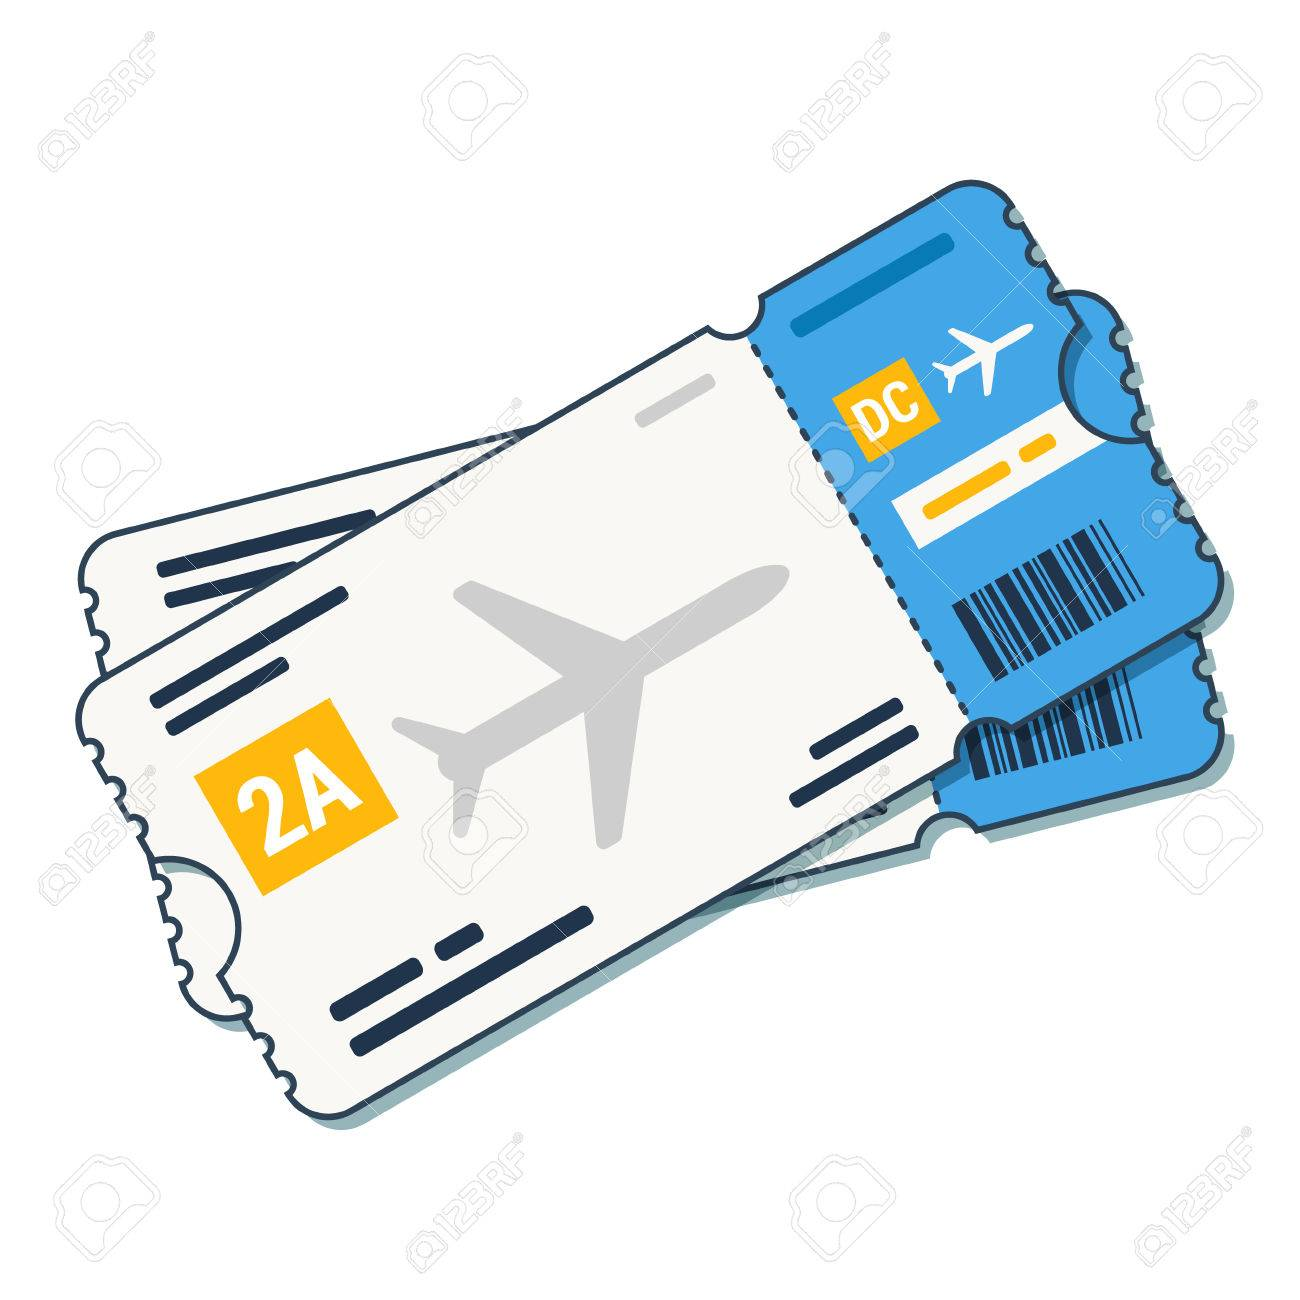 airline tickets boarding pass icon airline boarding pass ticket rh 123rf com